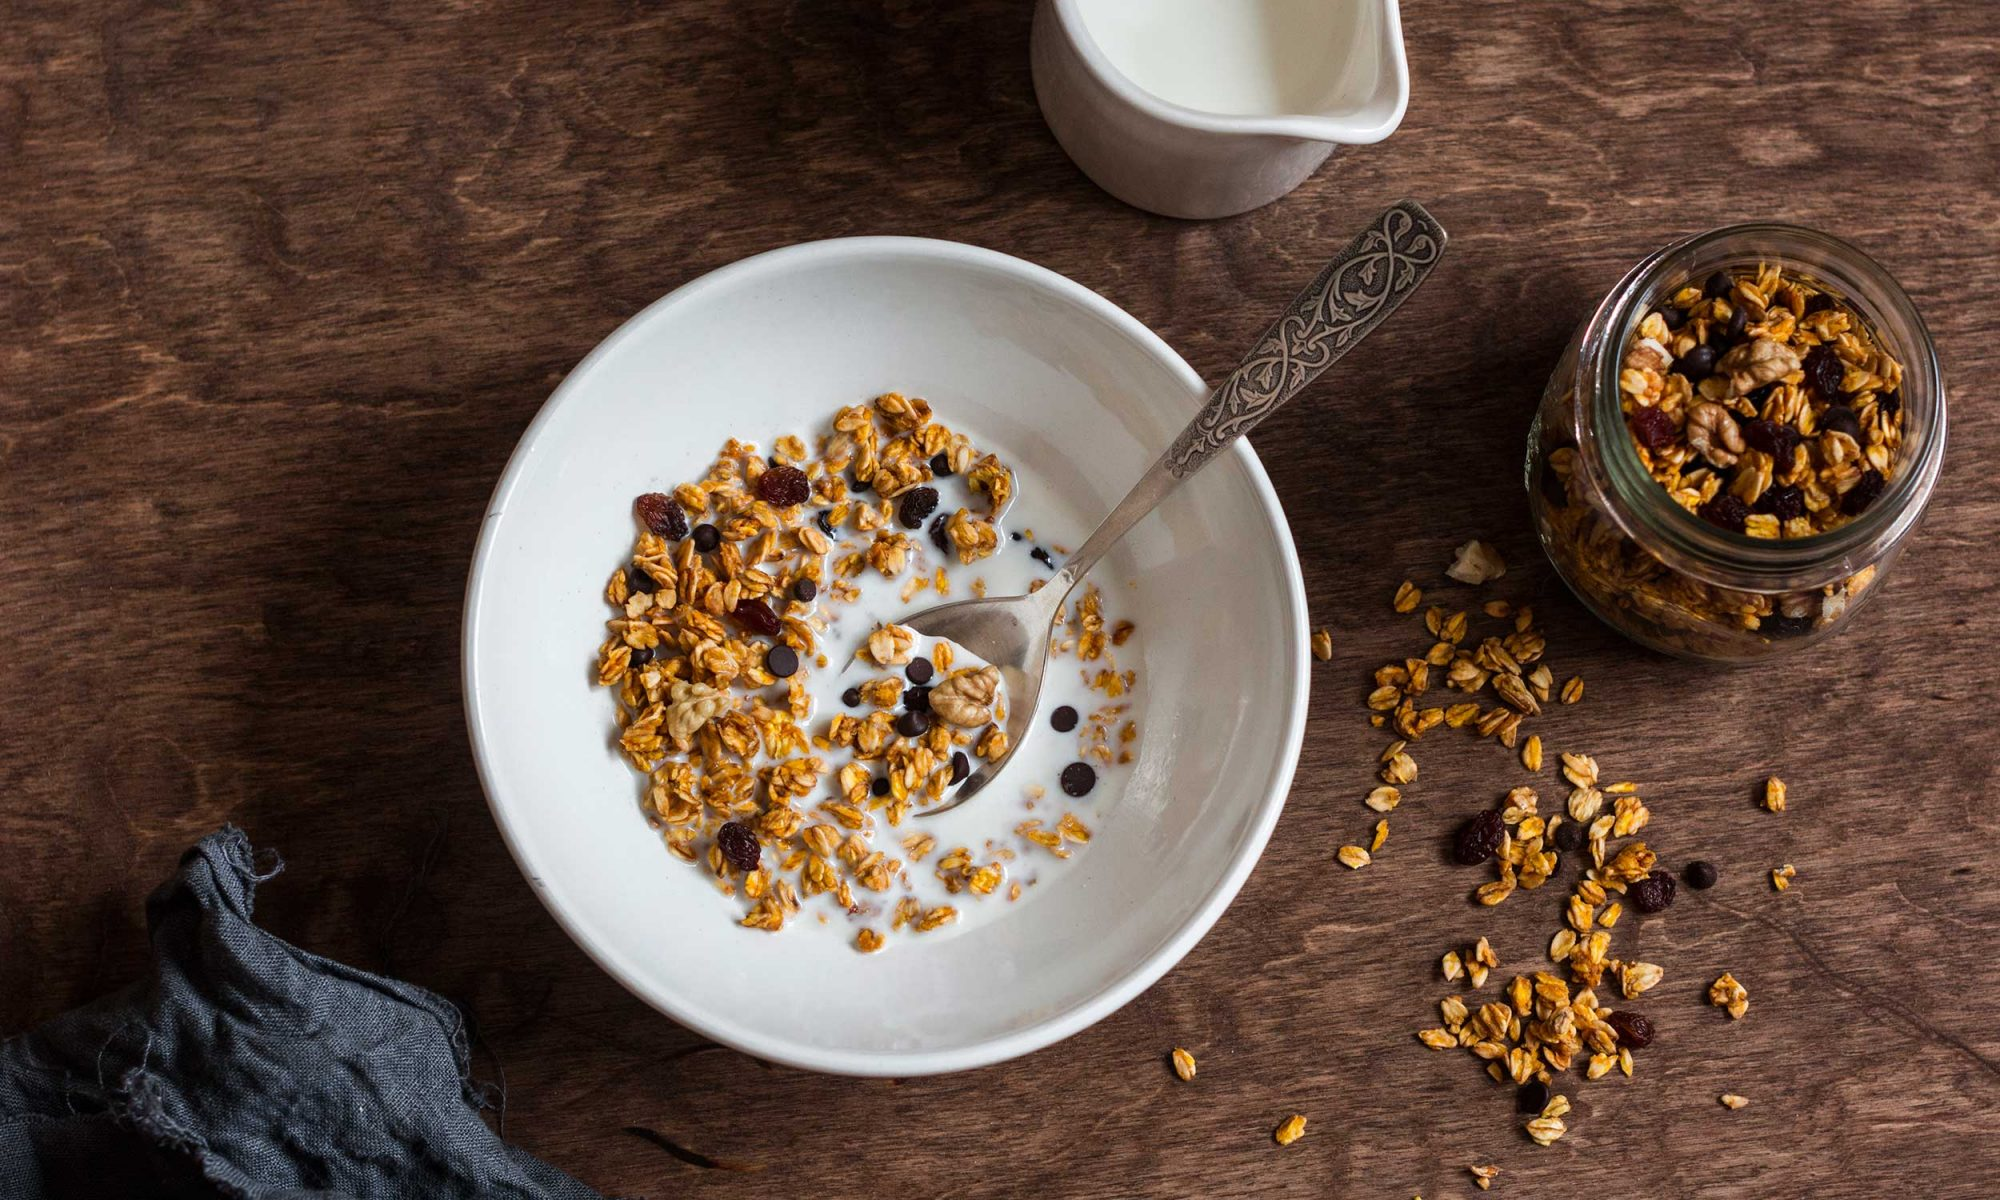 These Homemade Granola Recipes Will Save You All the Money